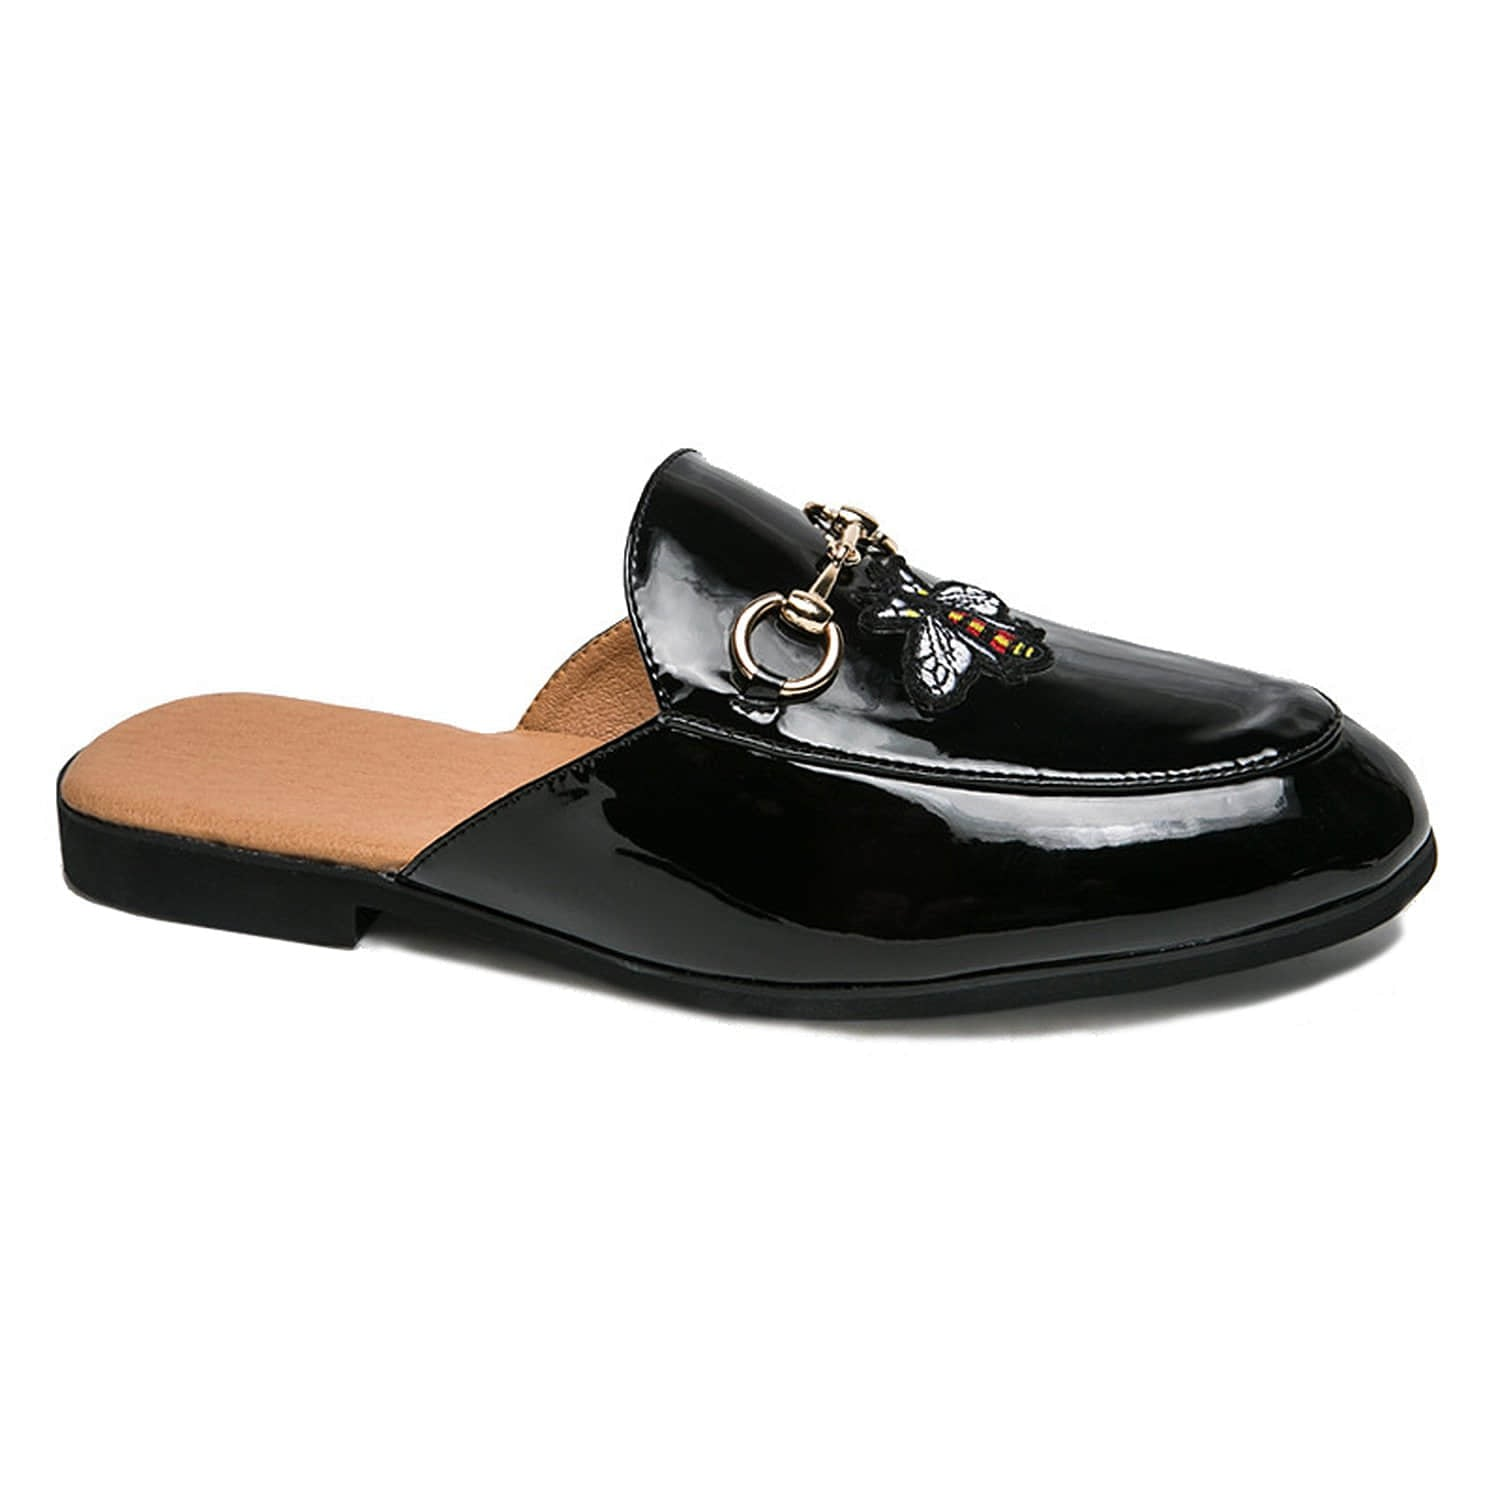 Patent Leather Buckle Slippers Mules